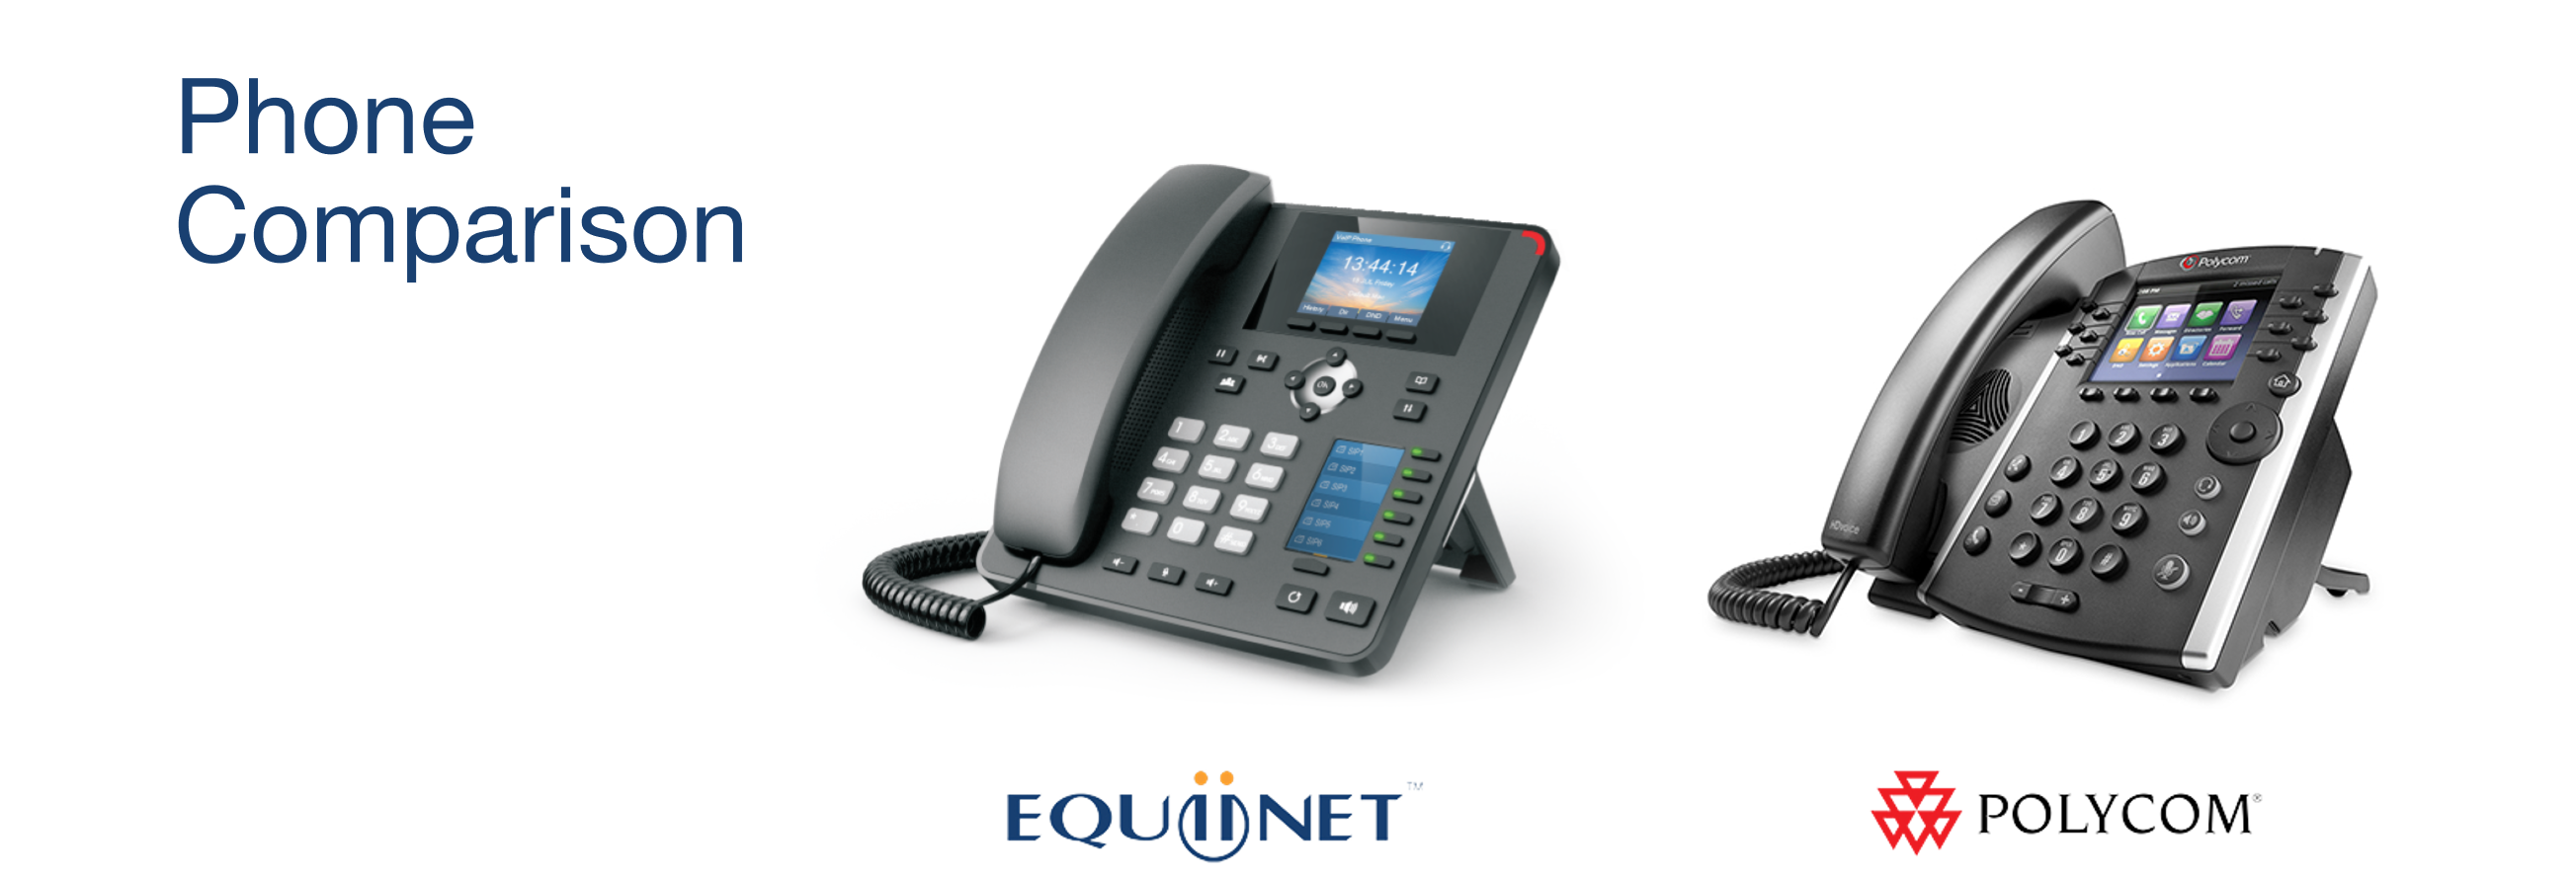 Phone Comparison: Equiinet (left), Polycom (right)